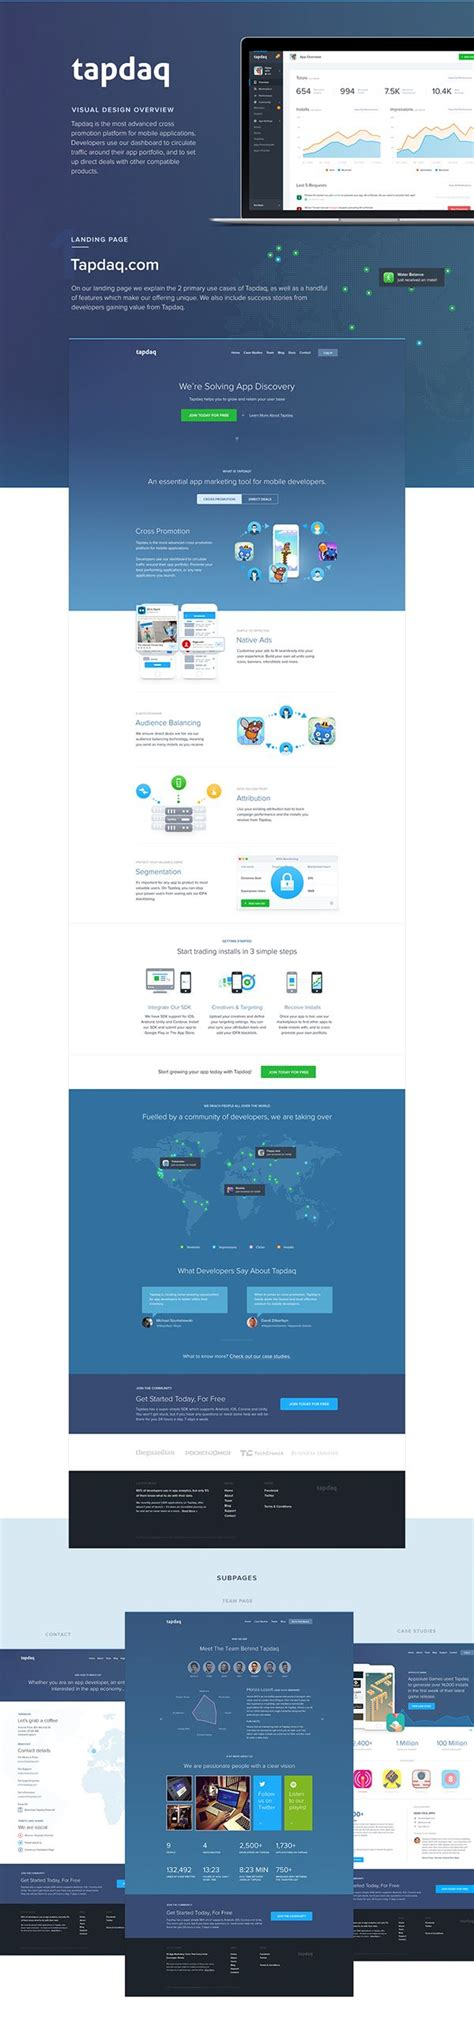 designspiration wordpress theme 17 best 17 more of the best single page wordpress themes